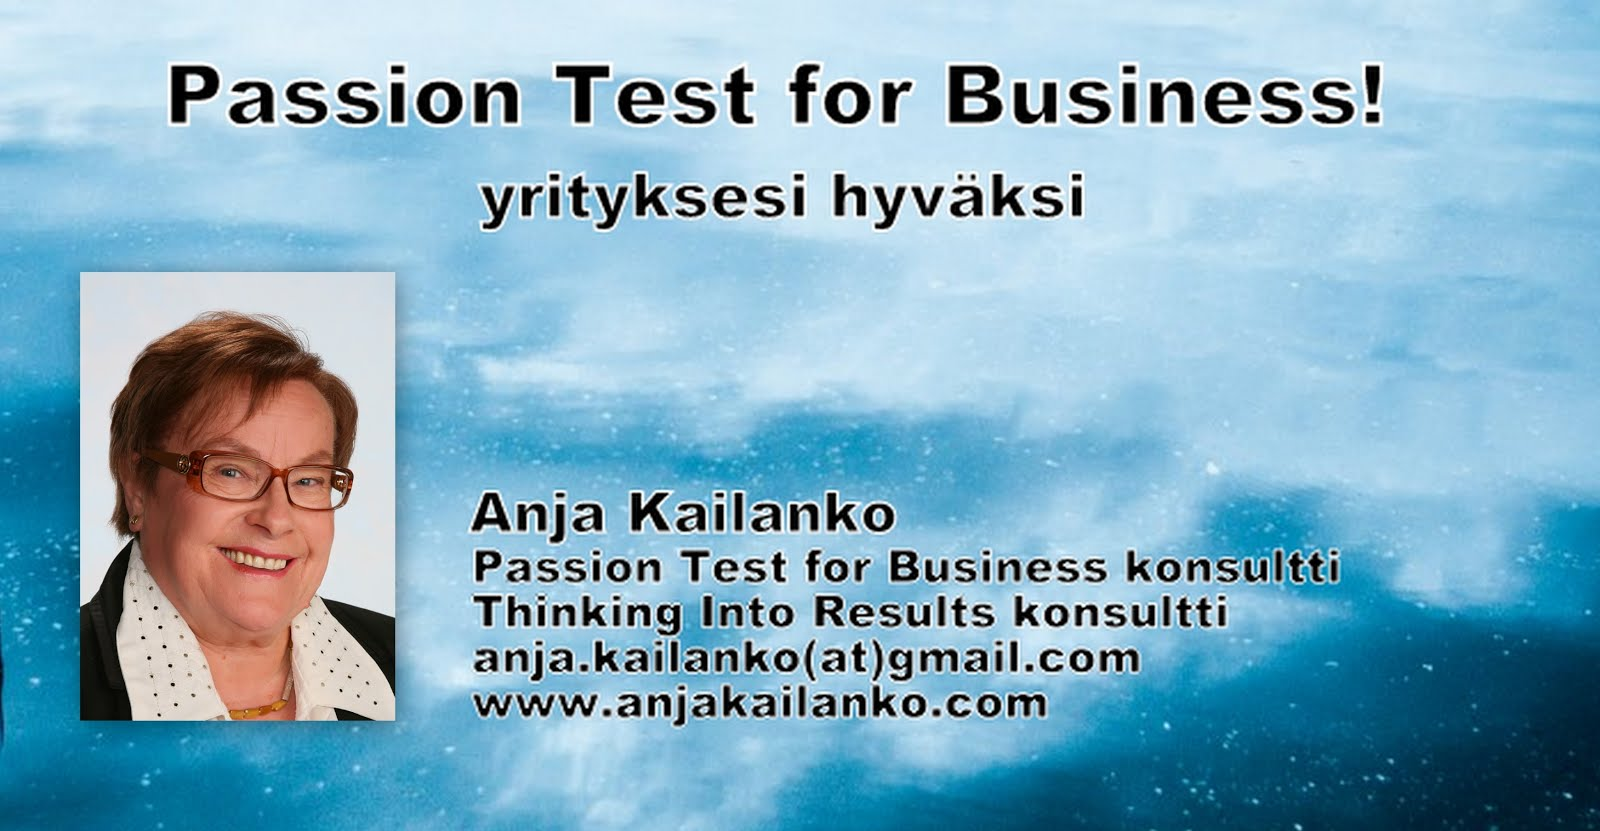 Passion Test for Business